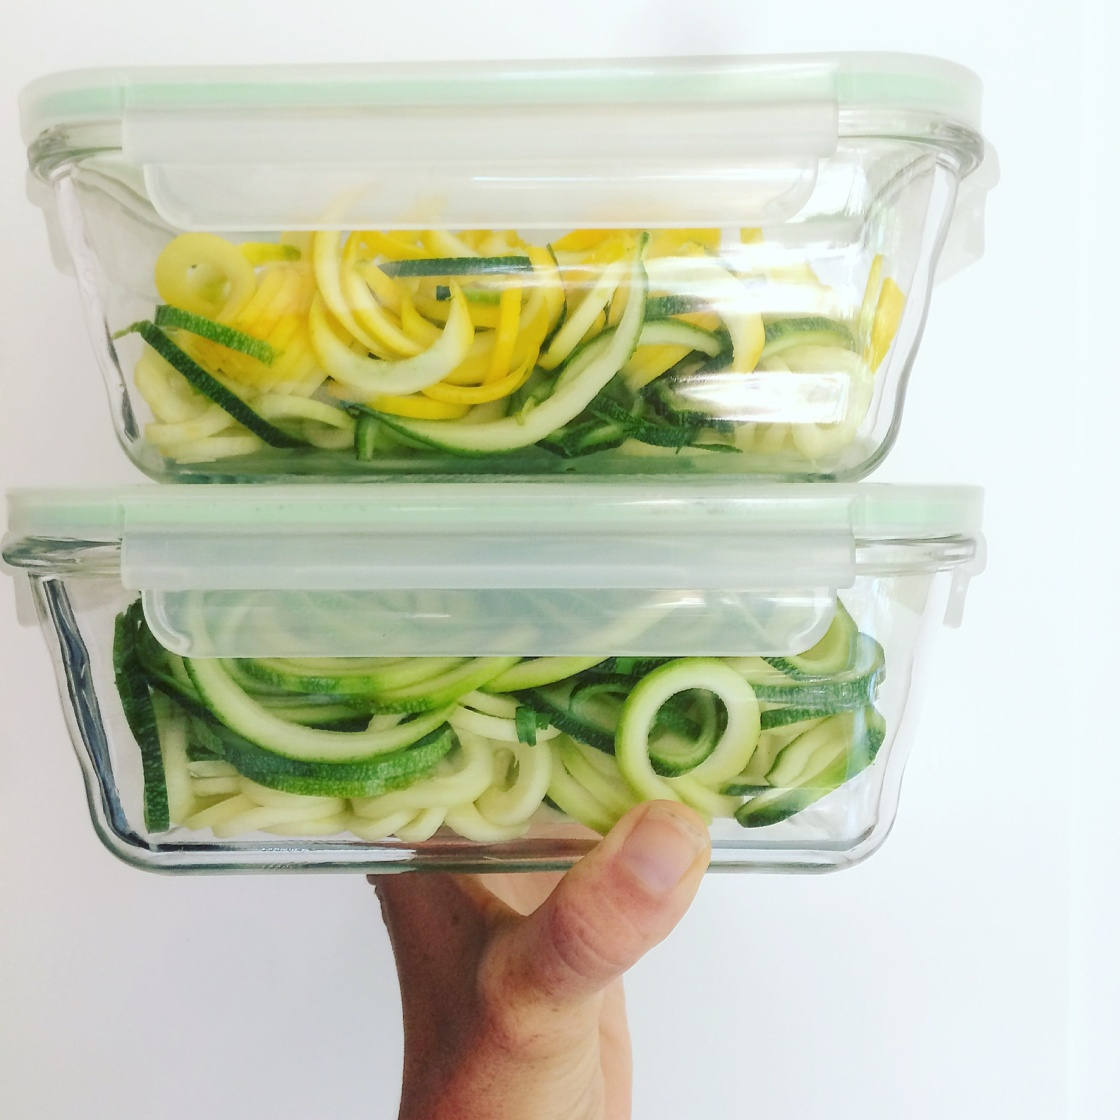 Zoodles zucchini